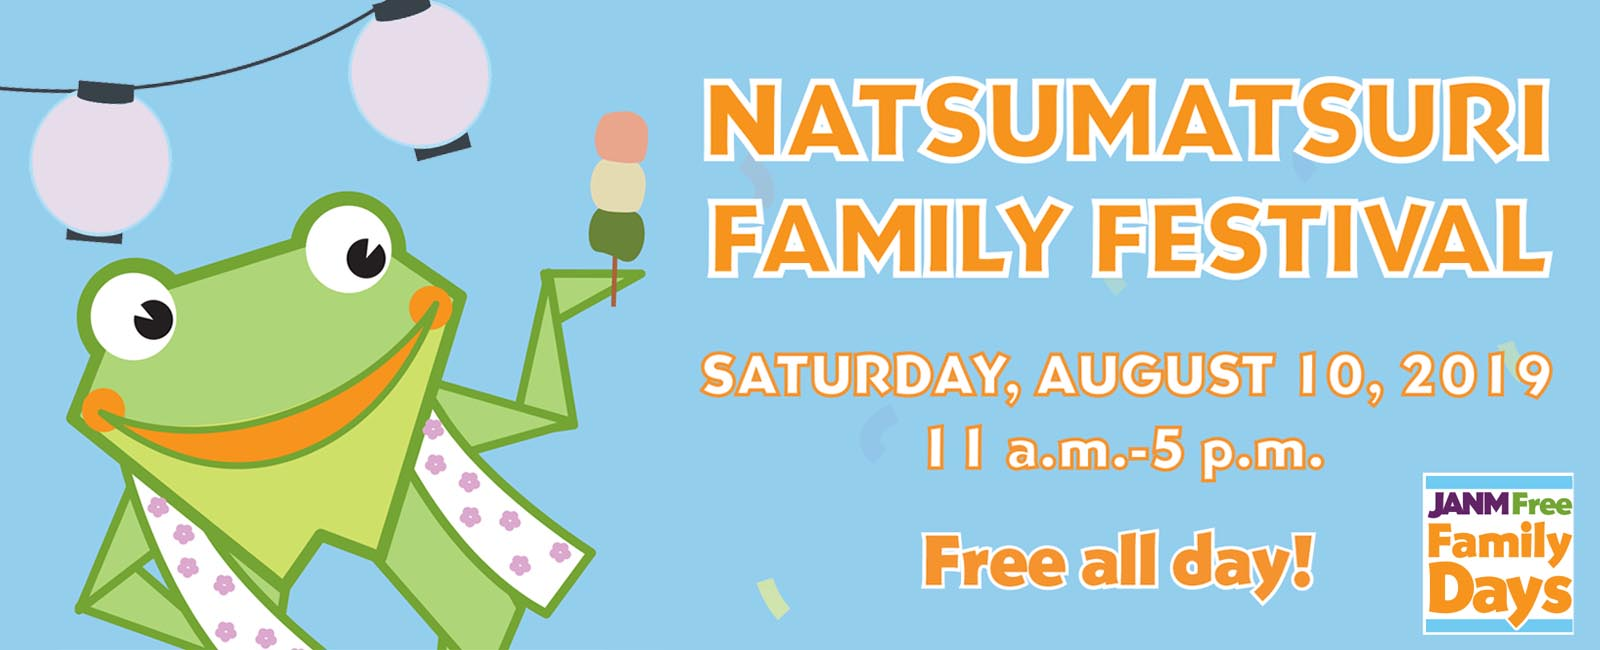 Natsumatsuri Family Festival on Saturday, August 10, 2019, 11 a.m. to 5 p.m. FREE ALL DAY!